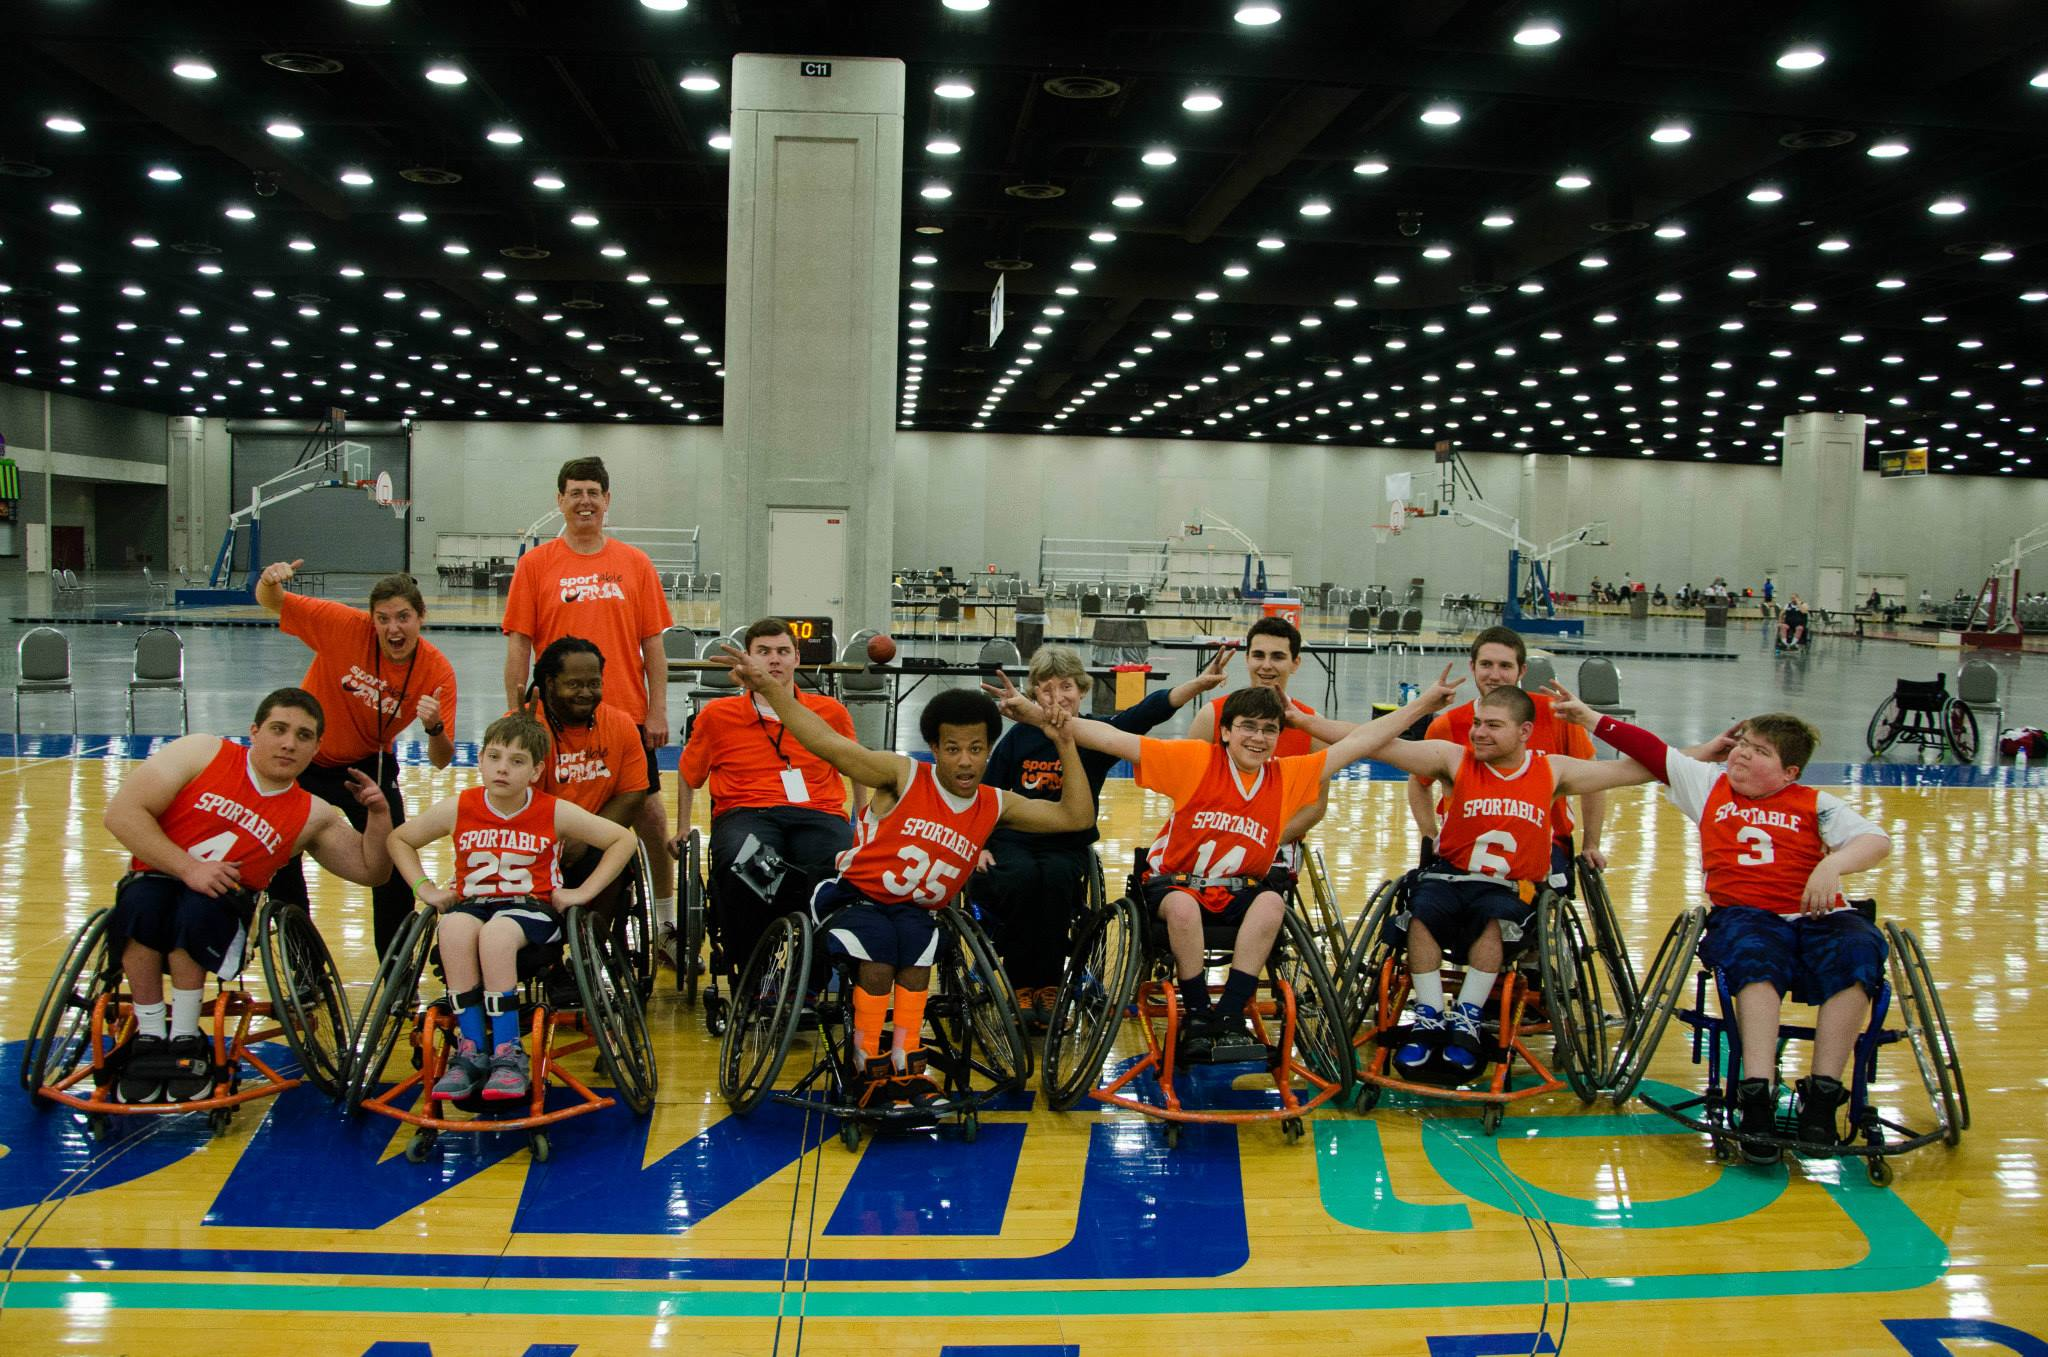 spokes nationals picture